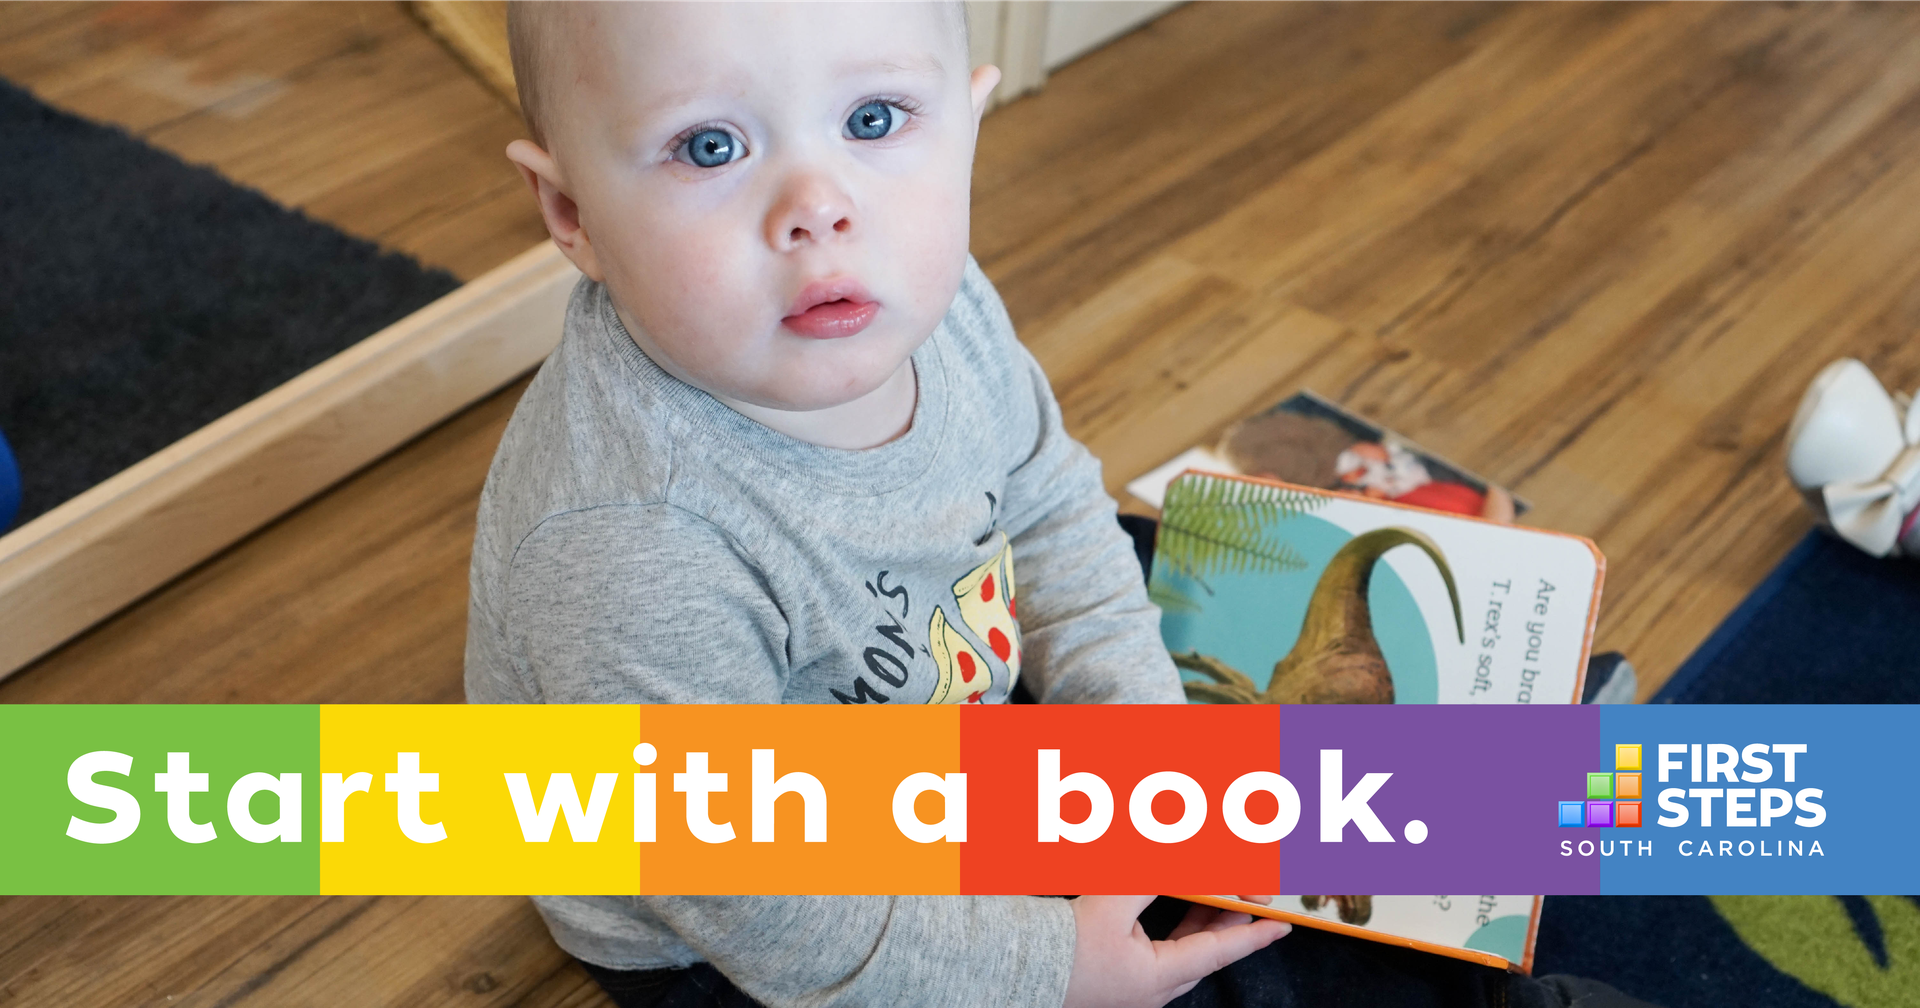 Baby holding a book